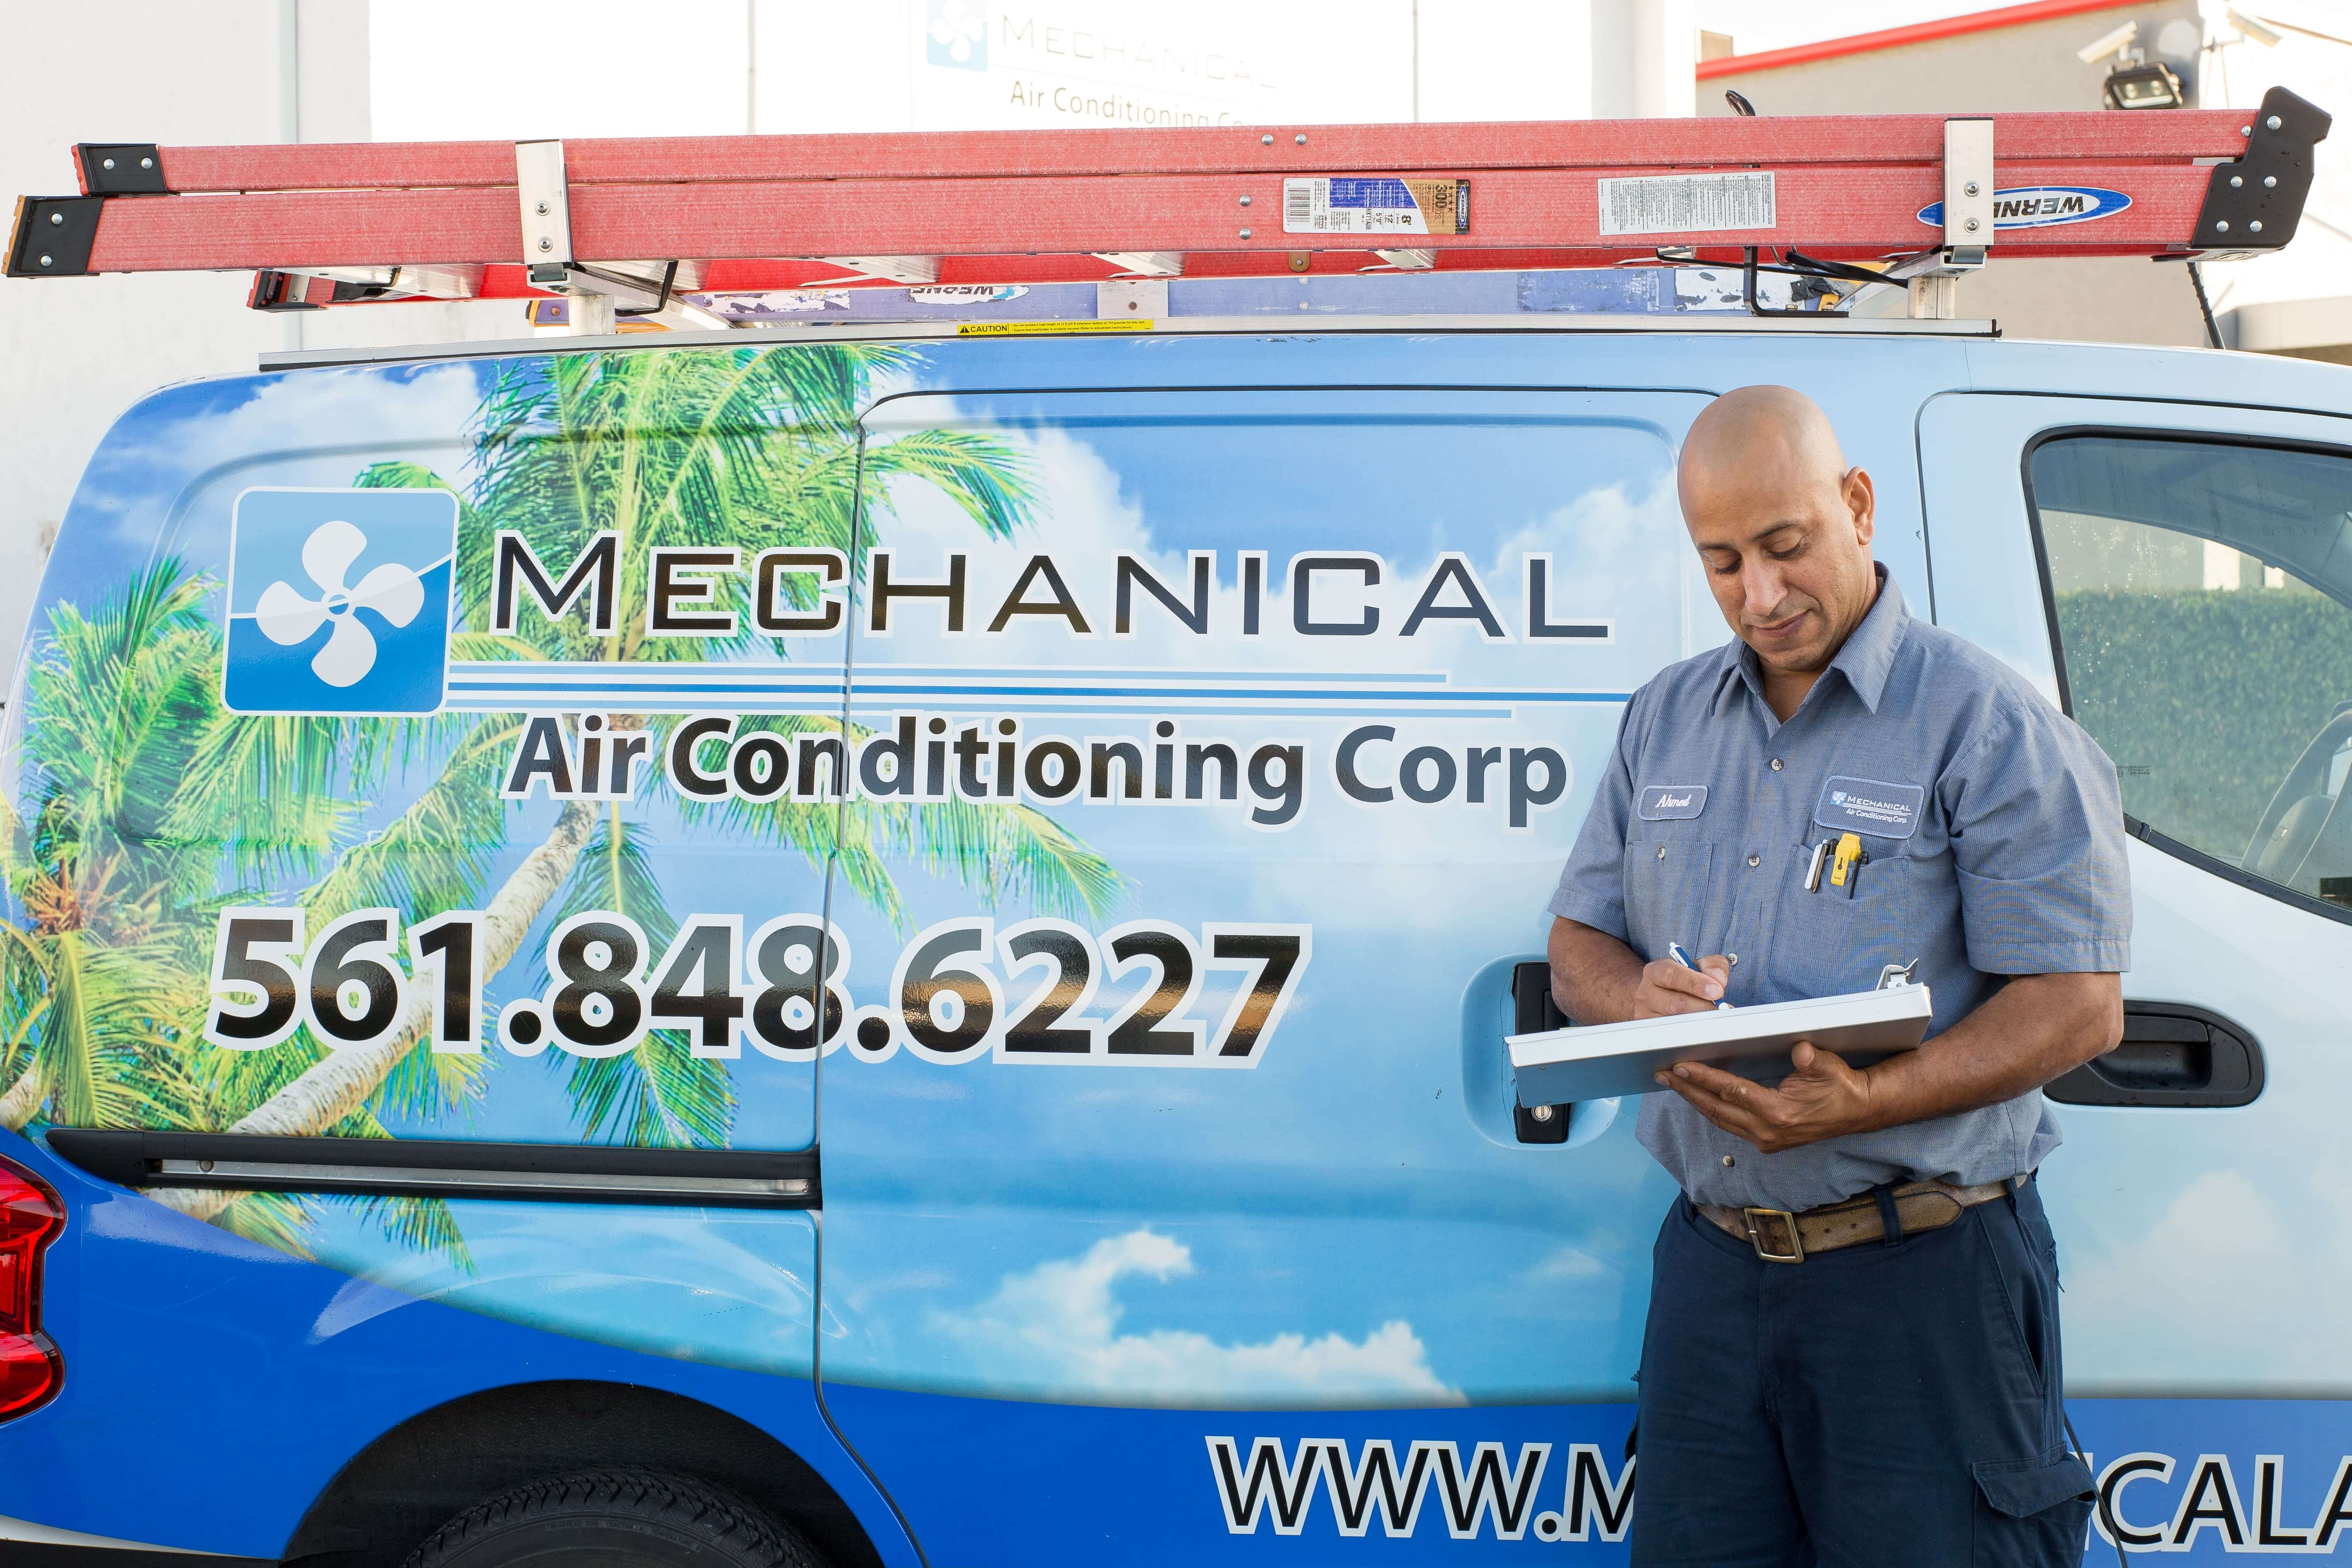 Mechanical Air Conditioning image 12